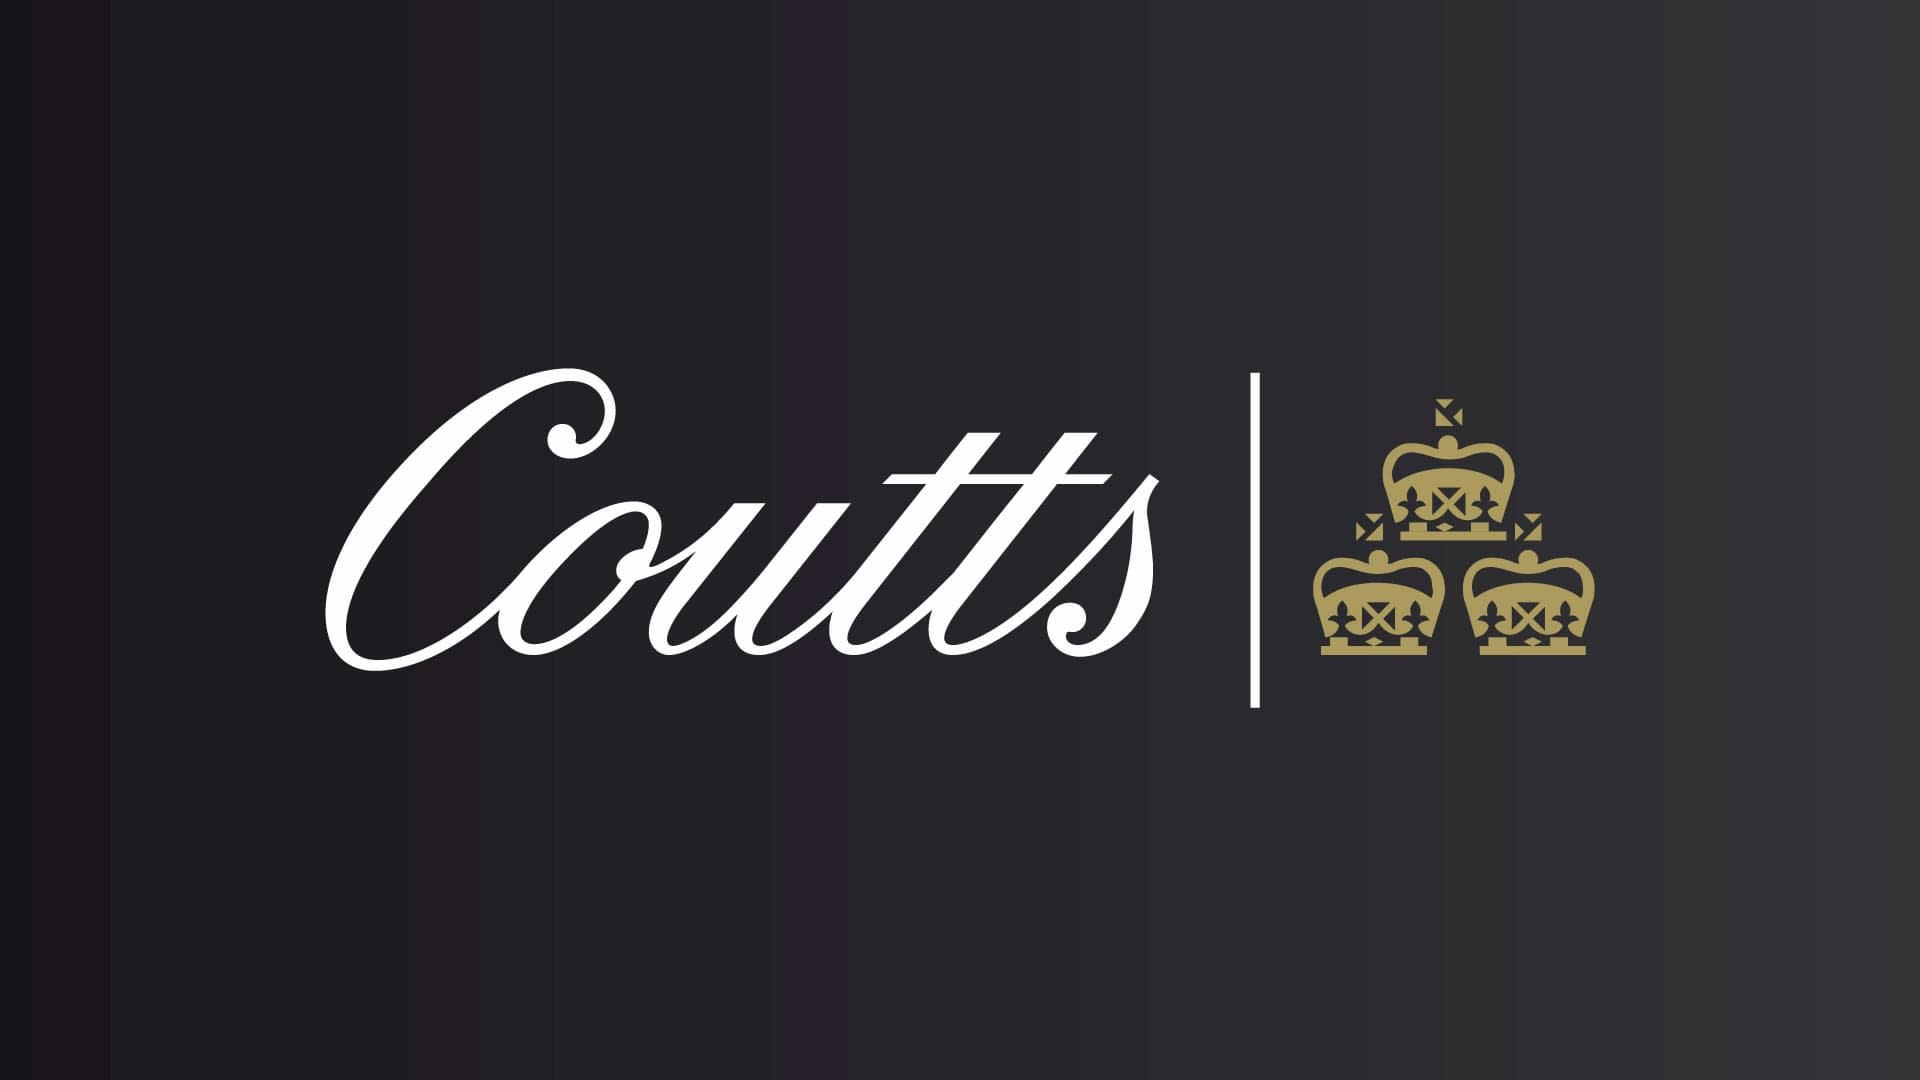 — Coutts & Co